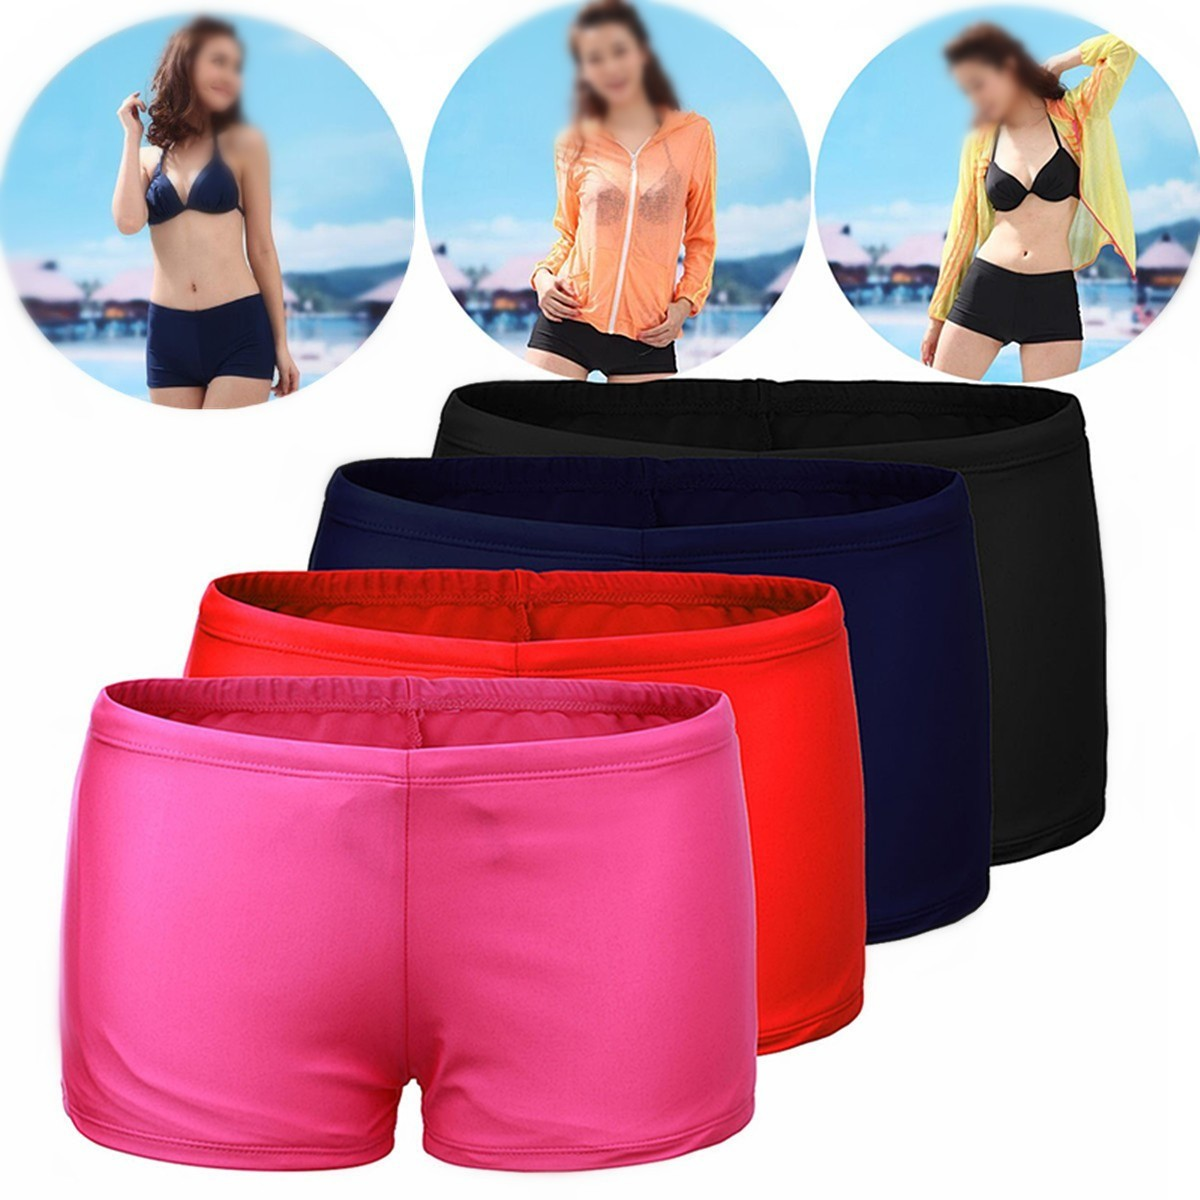 (Swimwear)New Women Shorts Plain Bikini Swim Swimwear Lady Boy Style Short Brief Bottoms S